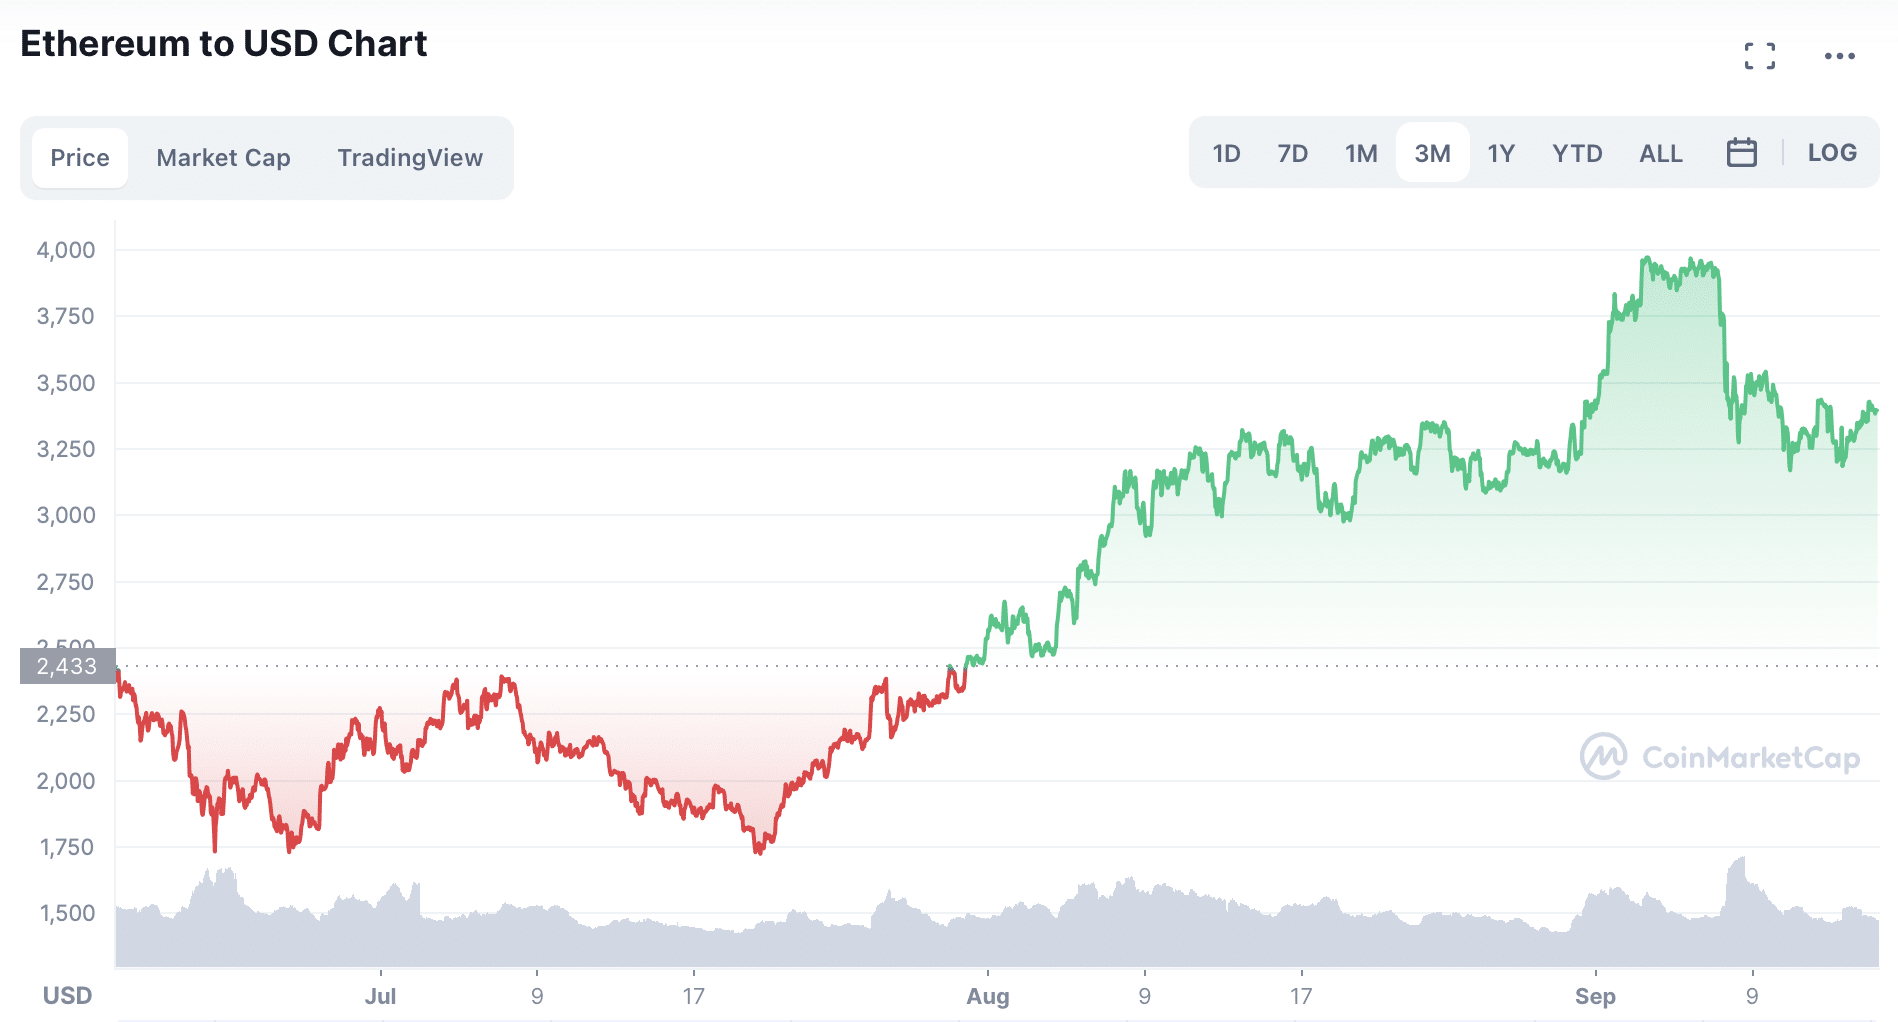 Why Is Ethereum Price Going Up?